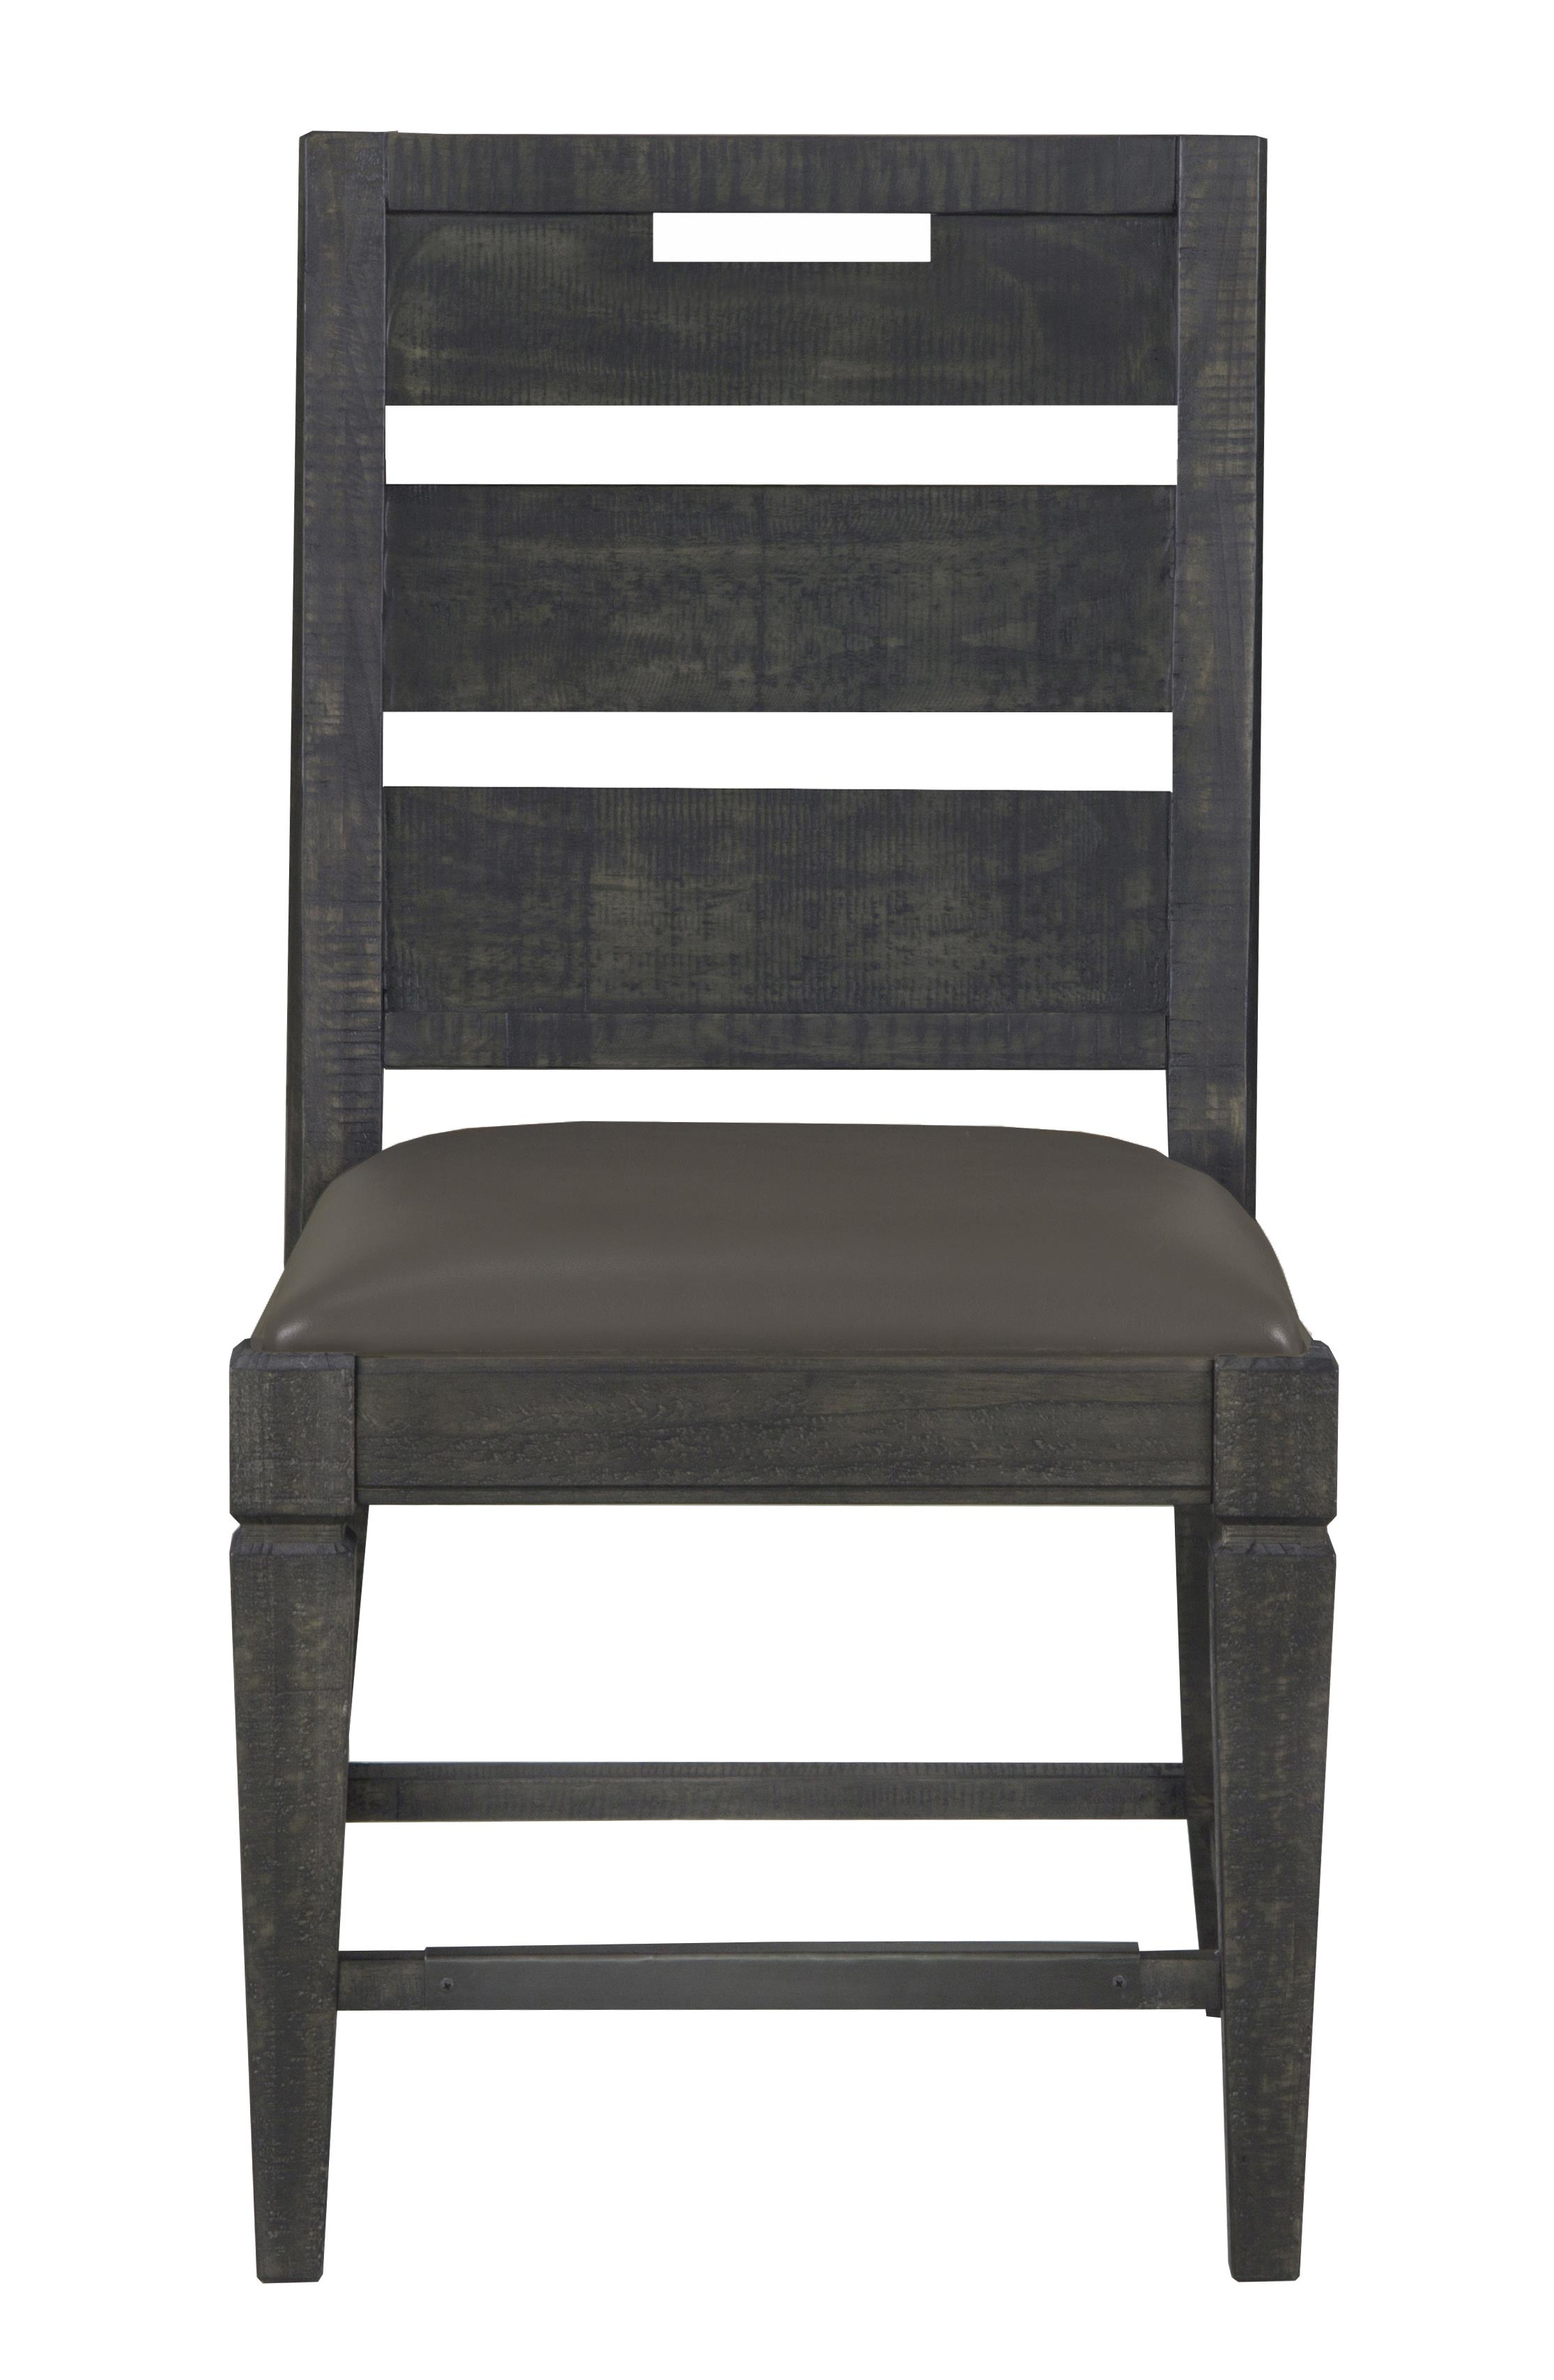 Abington Dining Side Chair w/Uphl seat by Magnussen Home at Value City Furniture